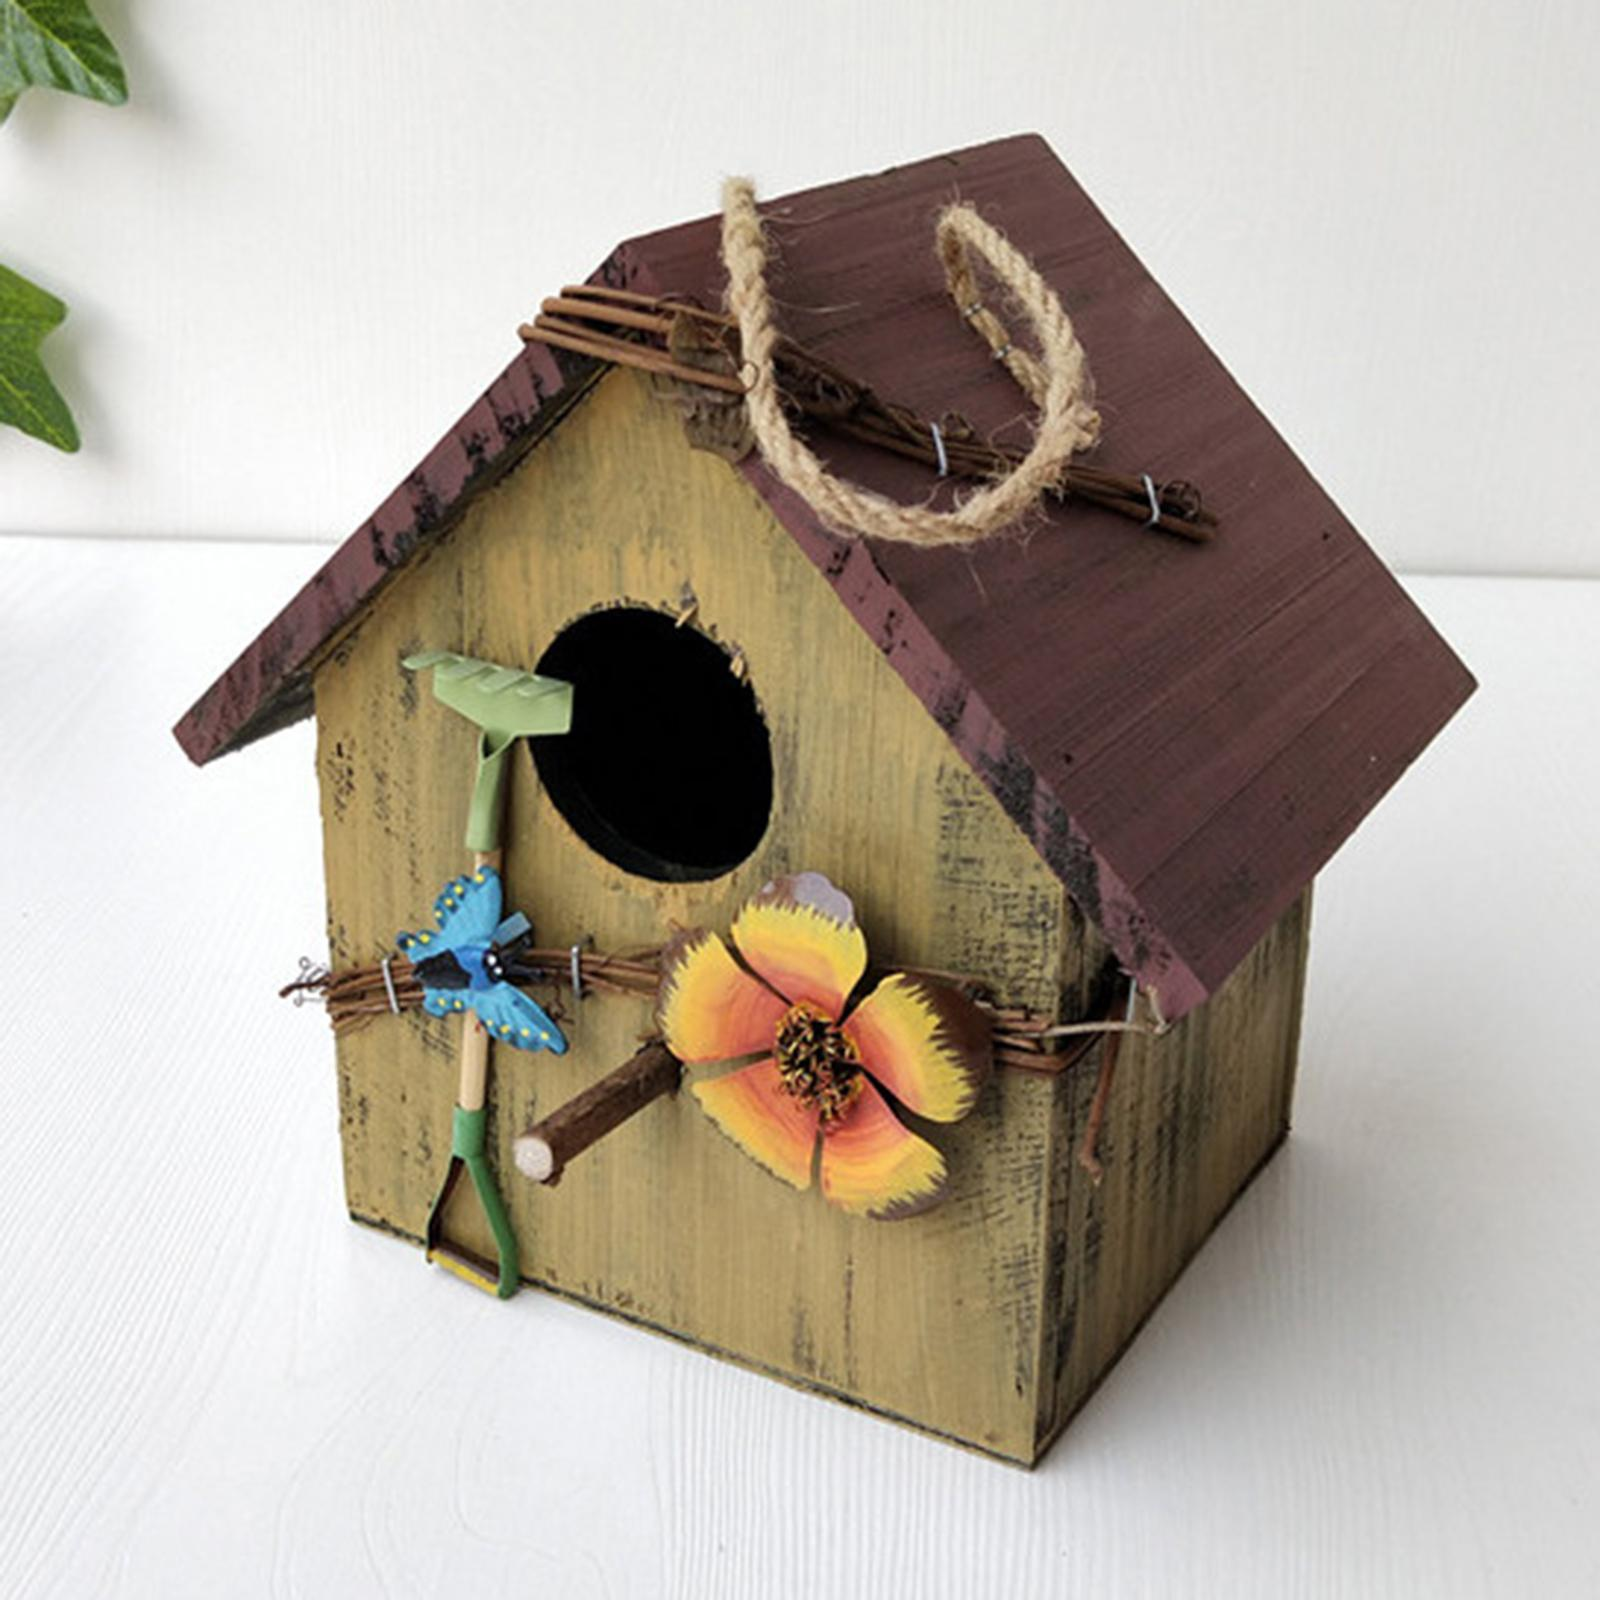 thumbnail 6 - Antique Hand Painted Wood Birdhouse Decorative Outdoor Bird House Garden